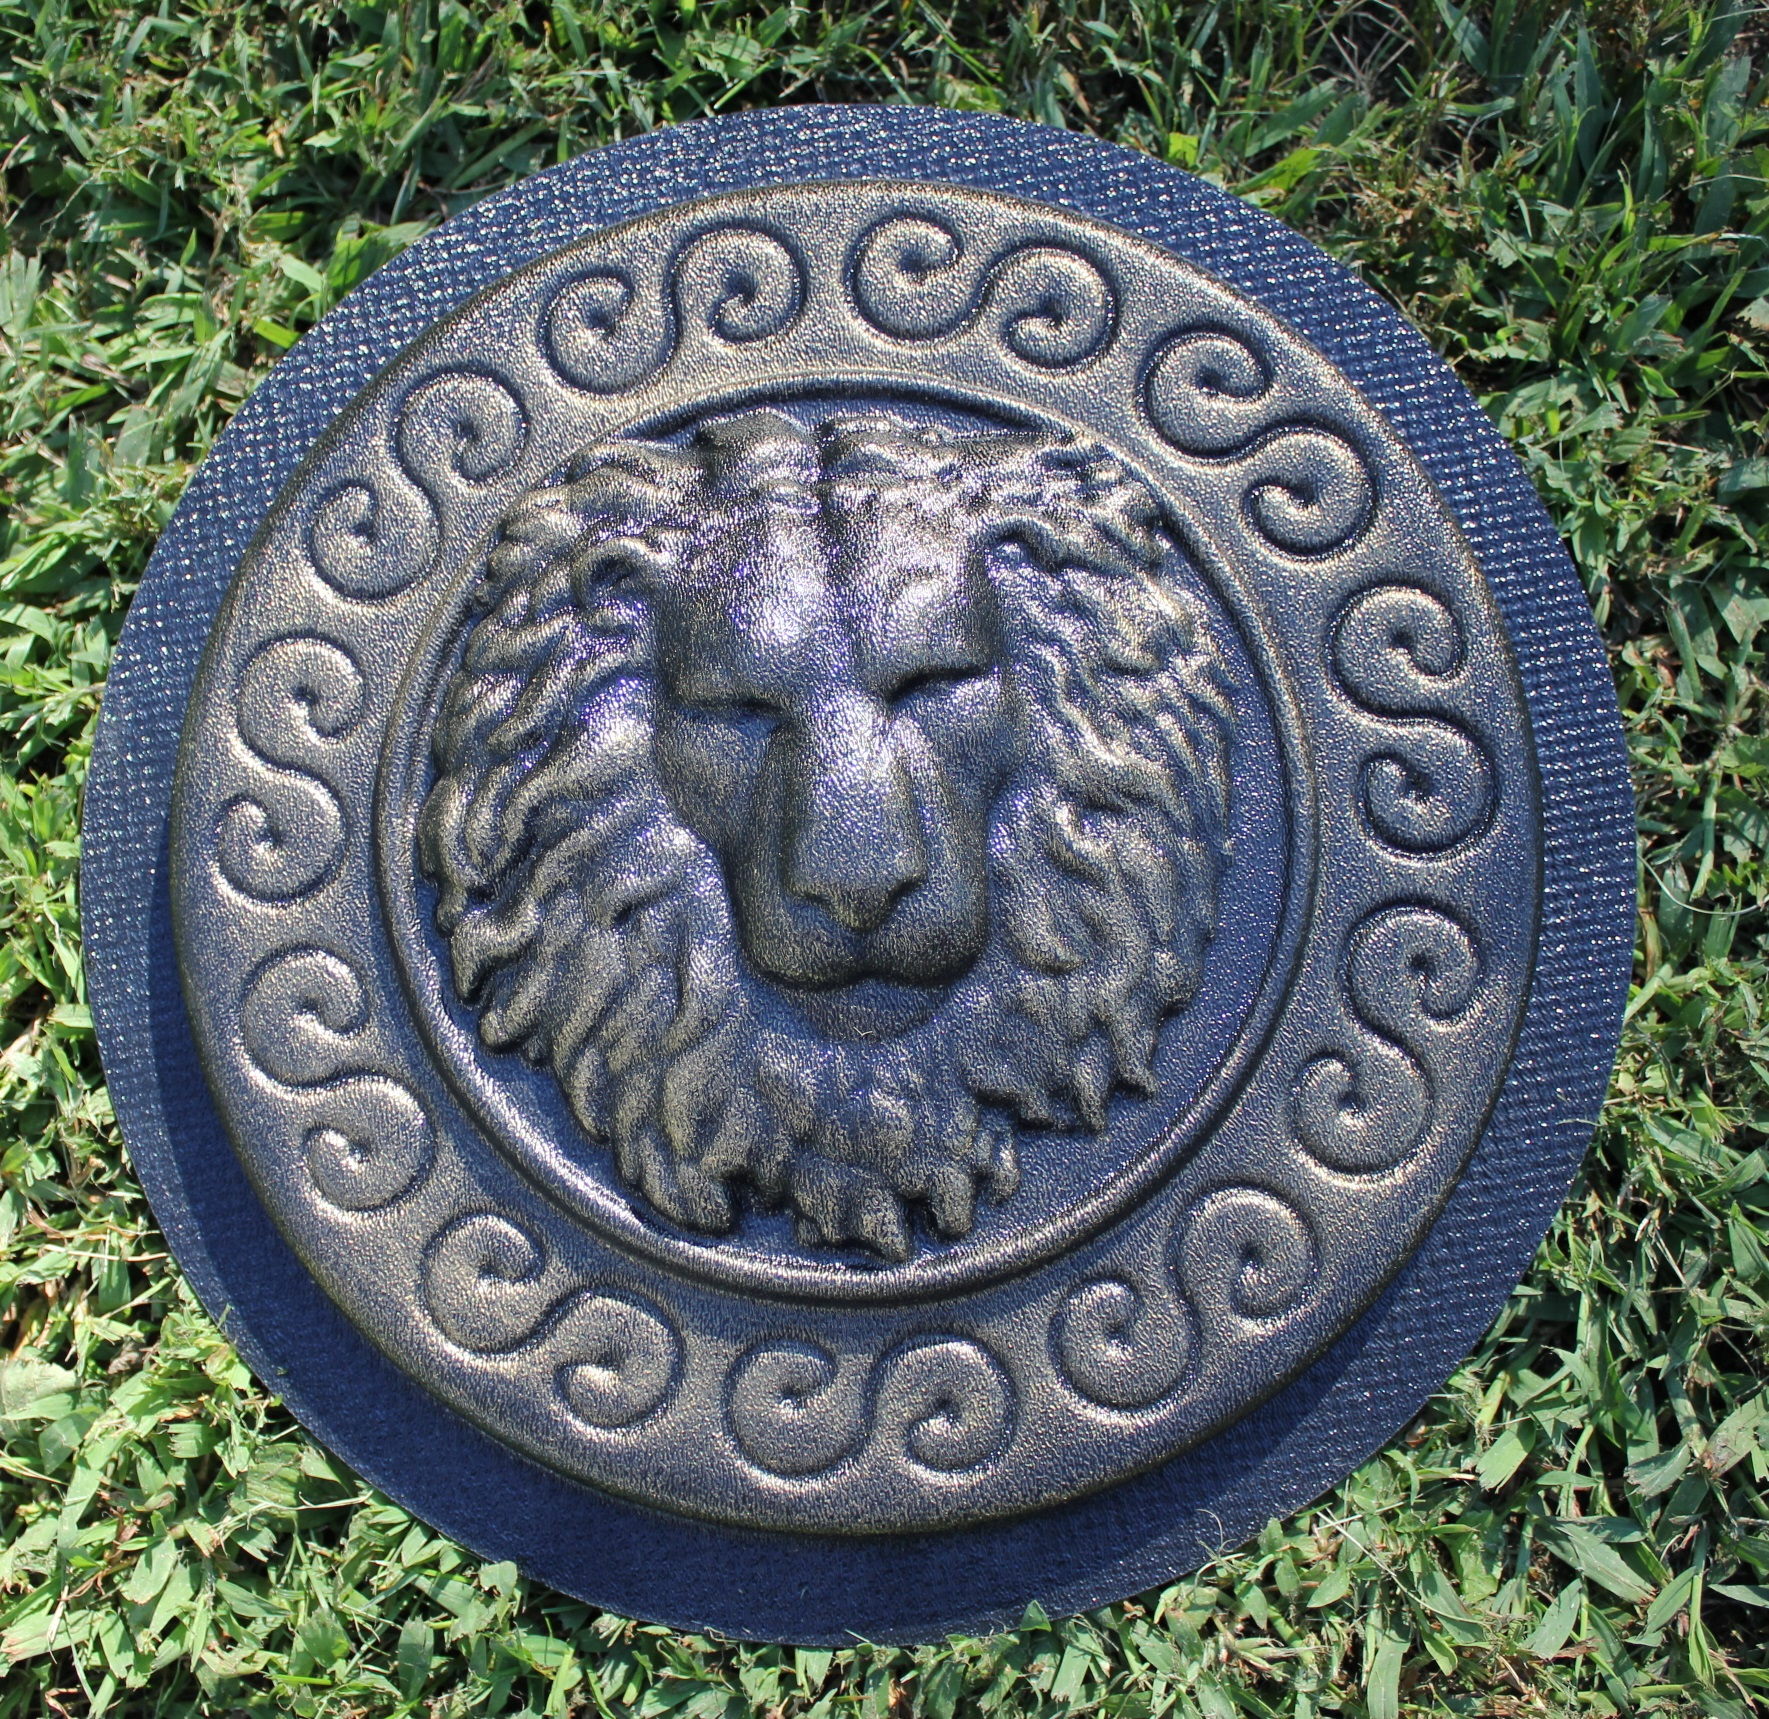 NEW heavy duty lion stepping stone mold